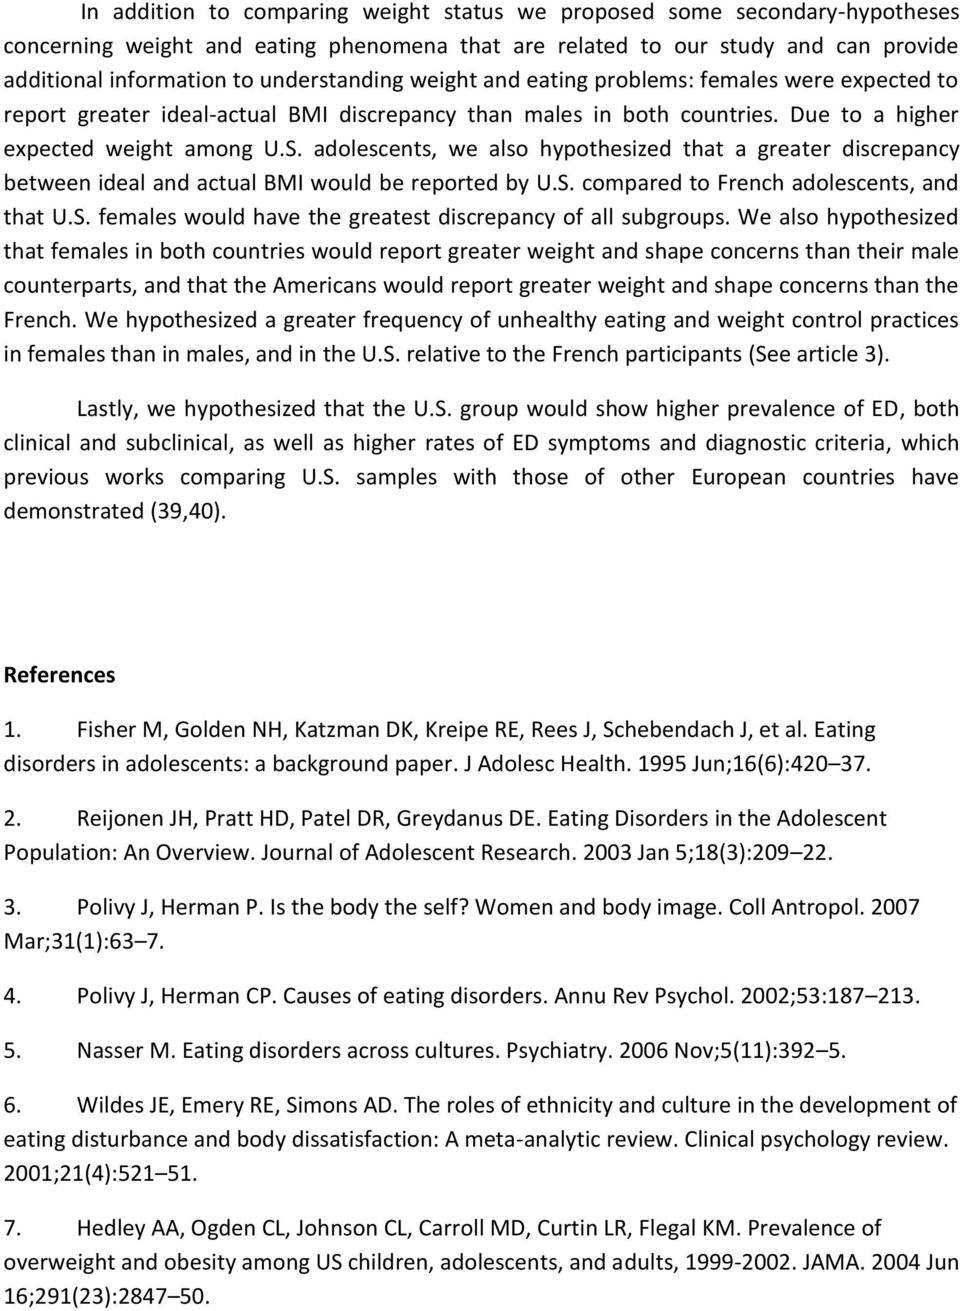 adolescents, we also hypothesized that a greater discrepancy between ideal and actual BMI would be reported by U.S. compared to French adolescents, and that U.S. females would have the greatest discrepancy of all subgroups.